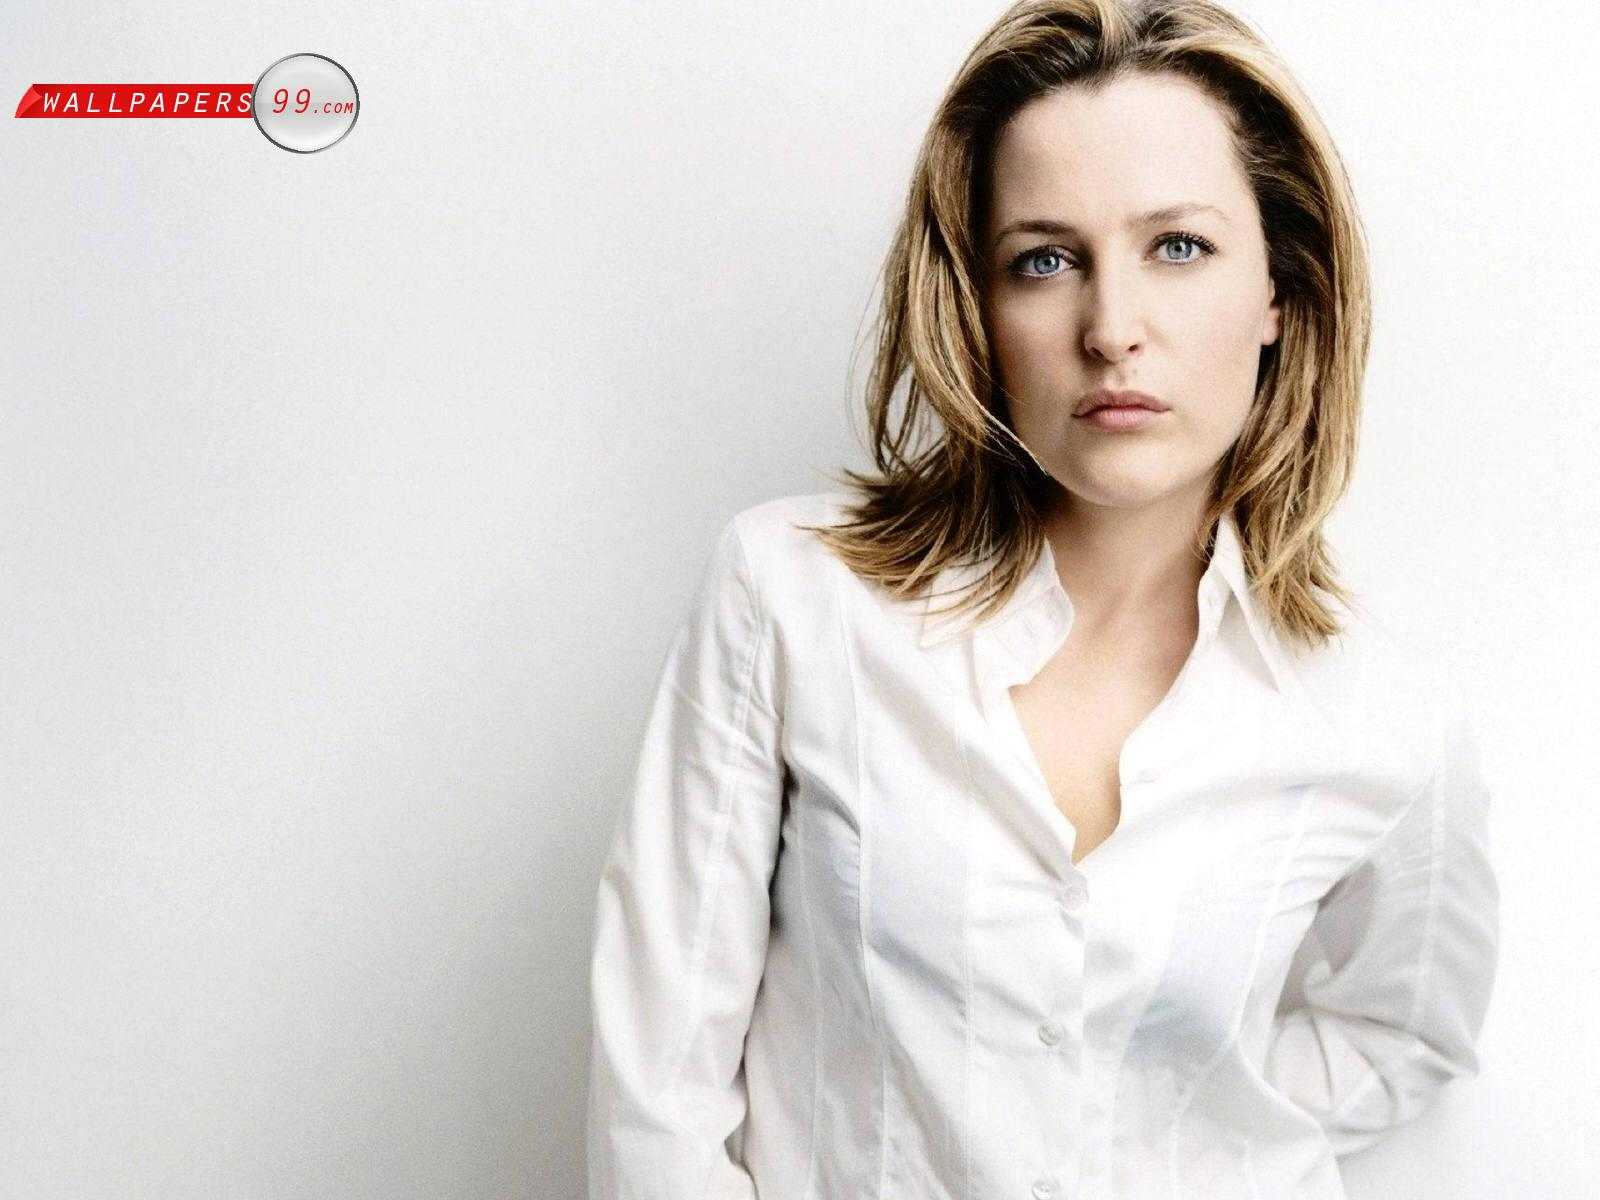 Download this Gillian Anderson Wallpaper picture